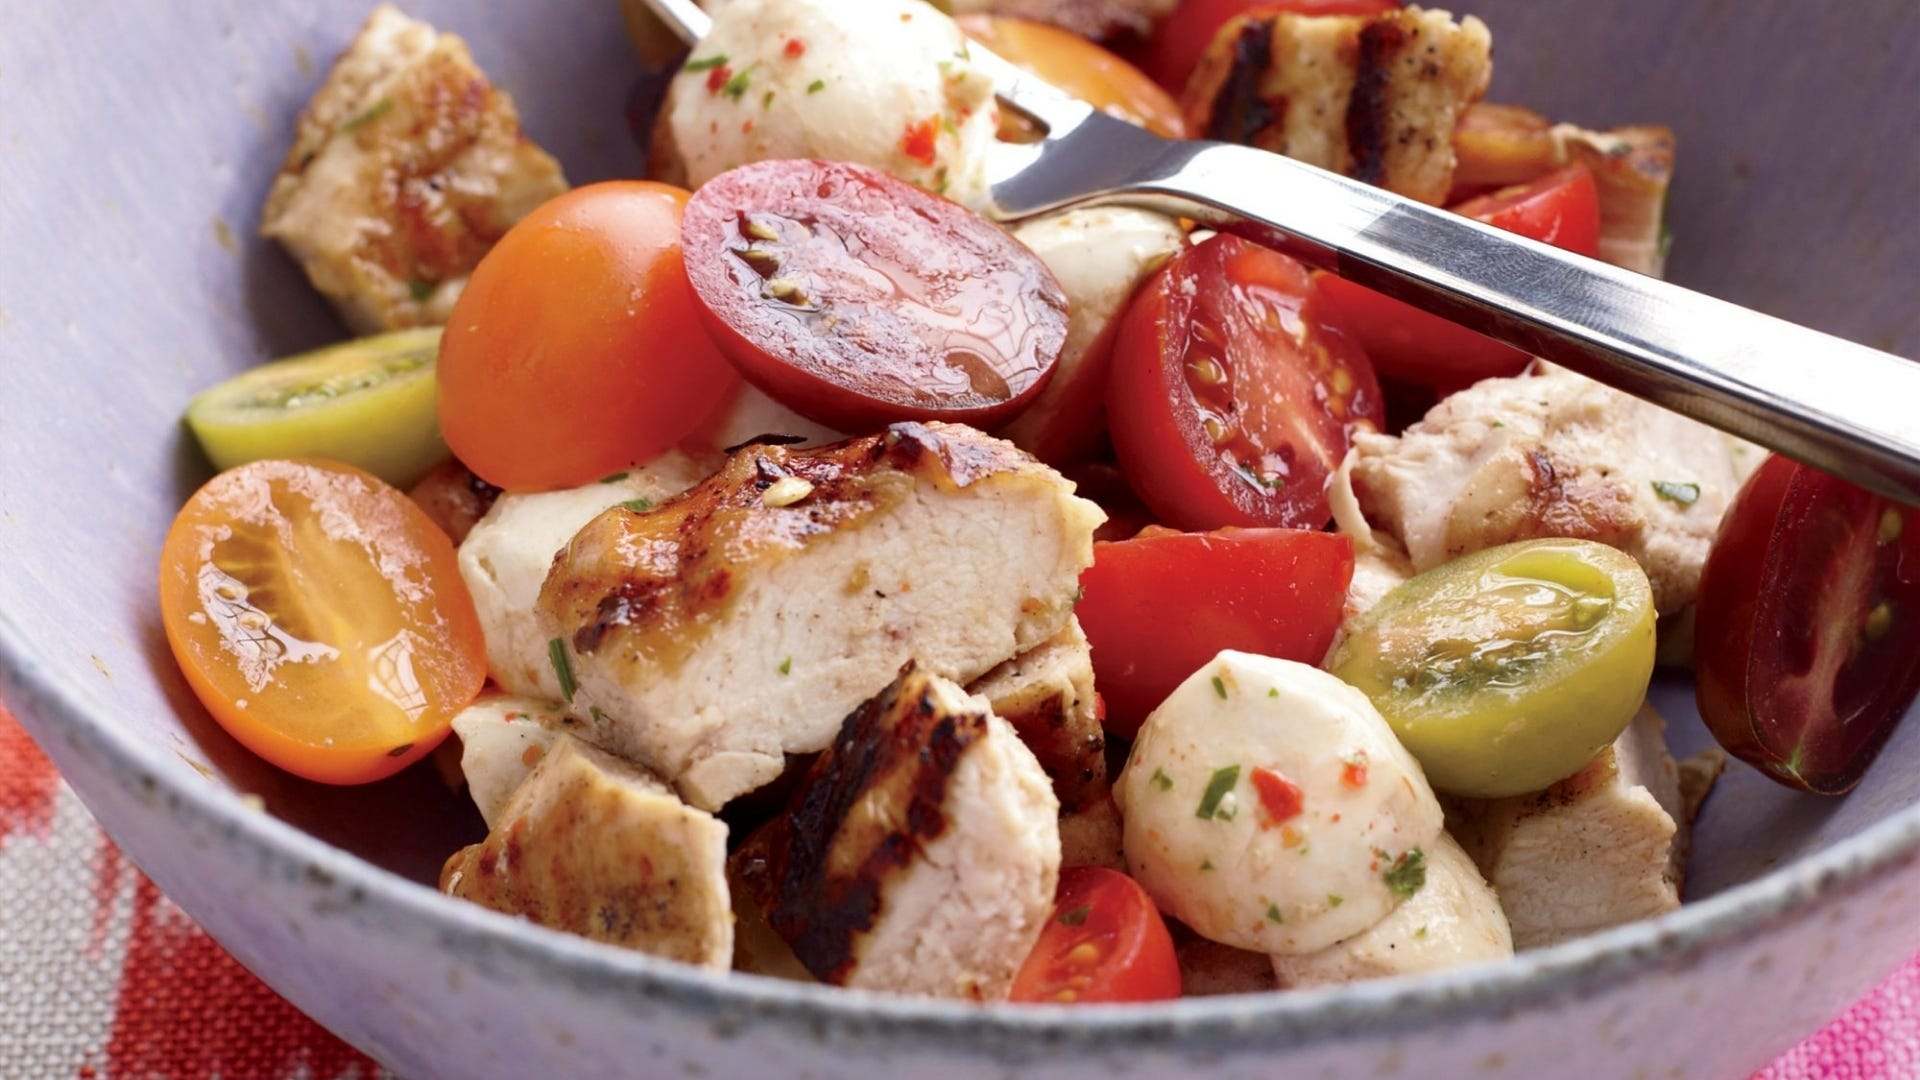 A bowl filled with grilled chicken, tomatoes, and mozzarella cheese balls.